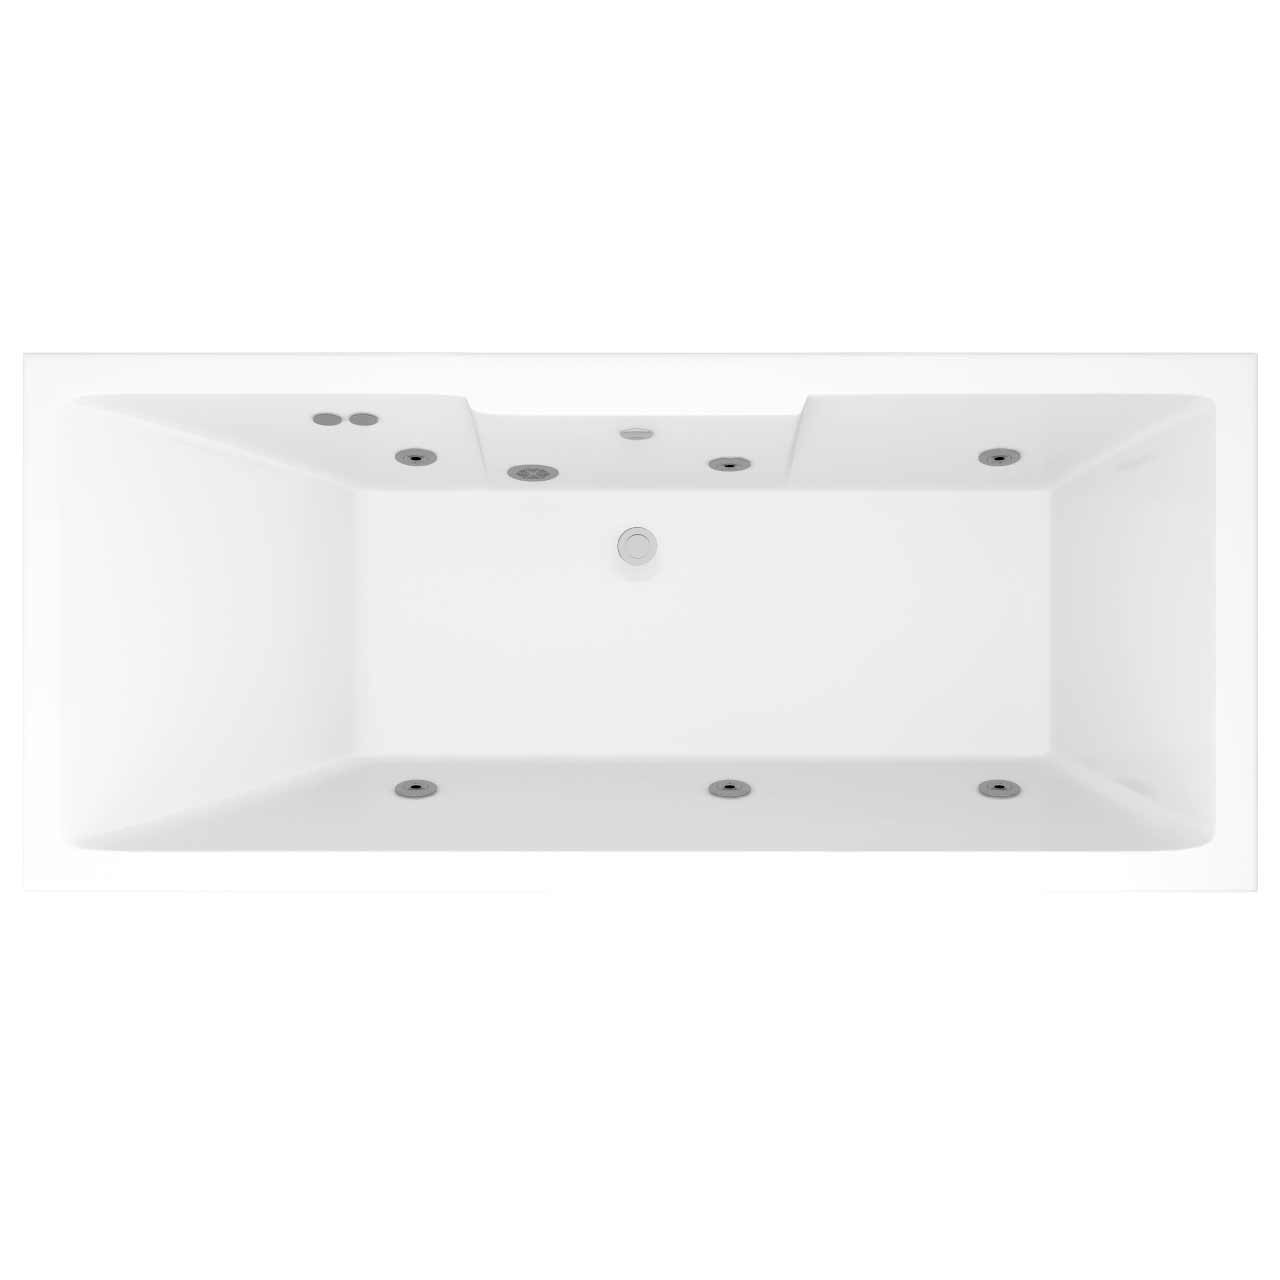 Legend Right Hand 6 Jet Chrome Flat Jet Whirlpool Bath 1700x750mm